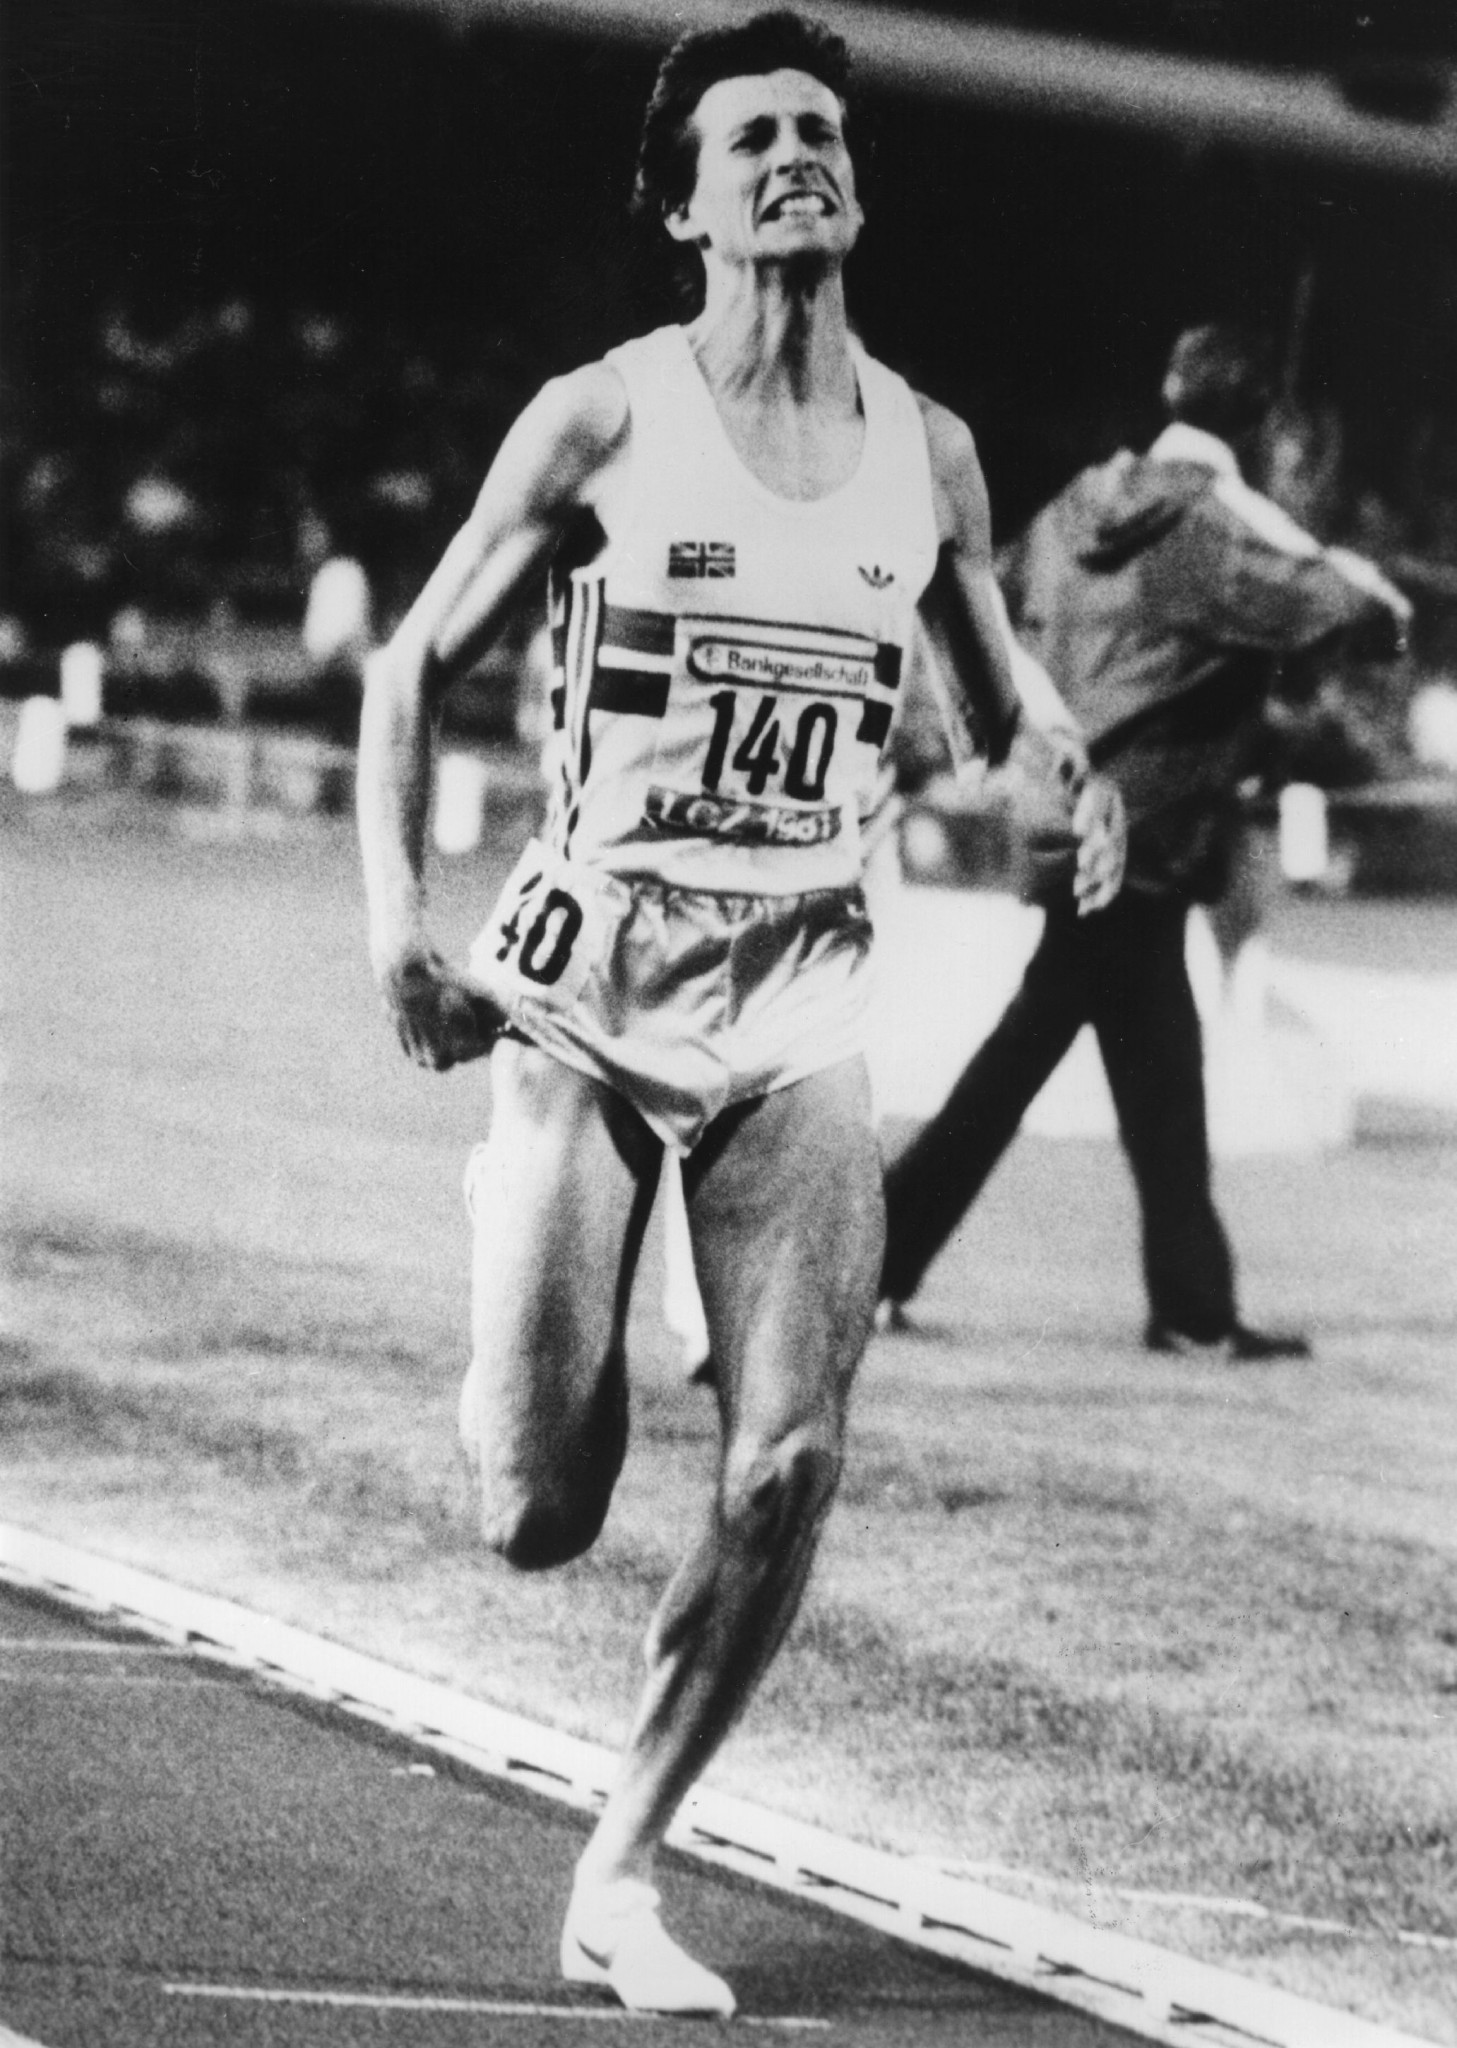 IAAF President Sebastian Coe set two world records at meetings in Zurich organised by Andreas Brugger, including the mile in 1981 - a total of 19 were set between 1973 and 2000 ©Getty Images